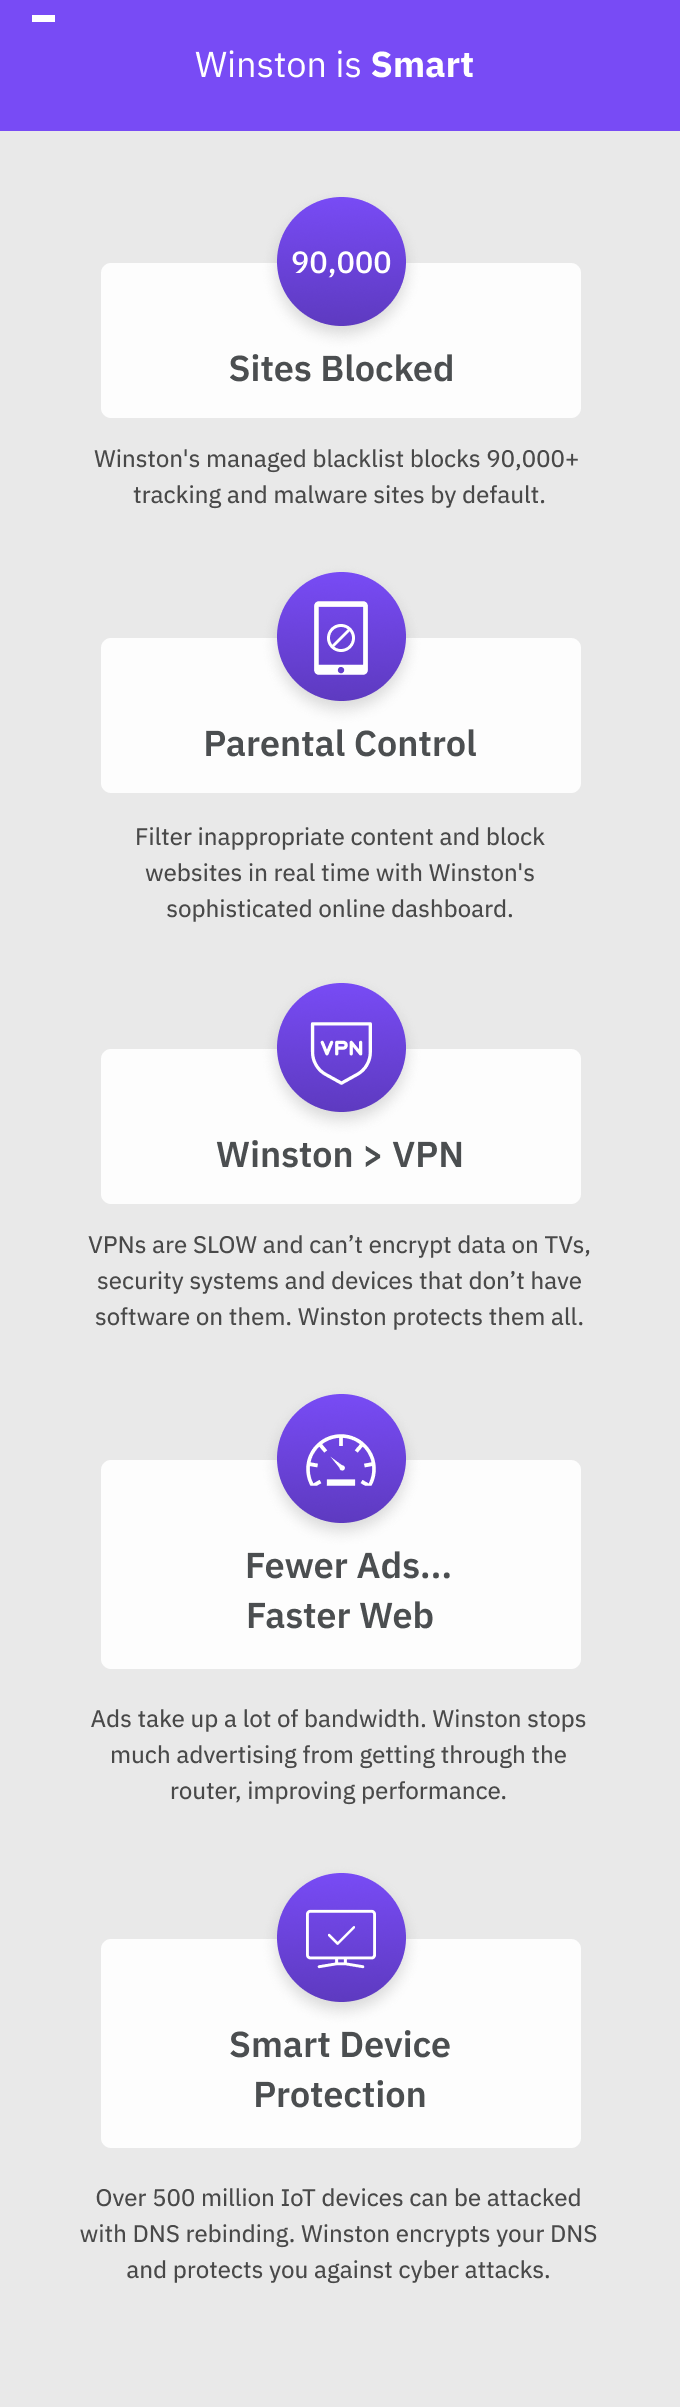 Winston: Take Back Control of Your Online Privacy by Winston